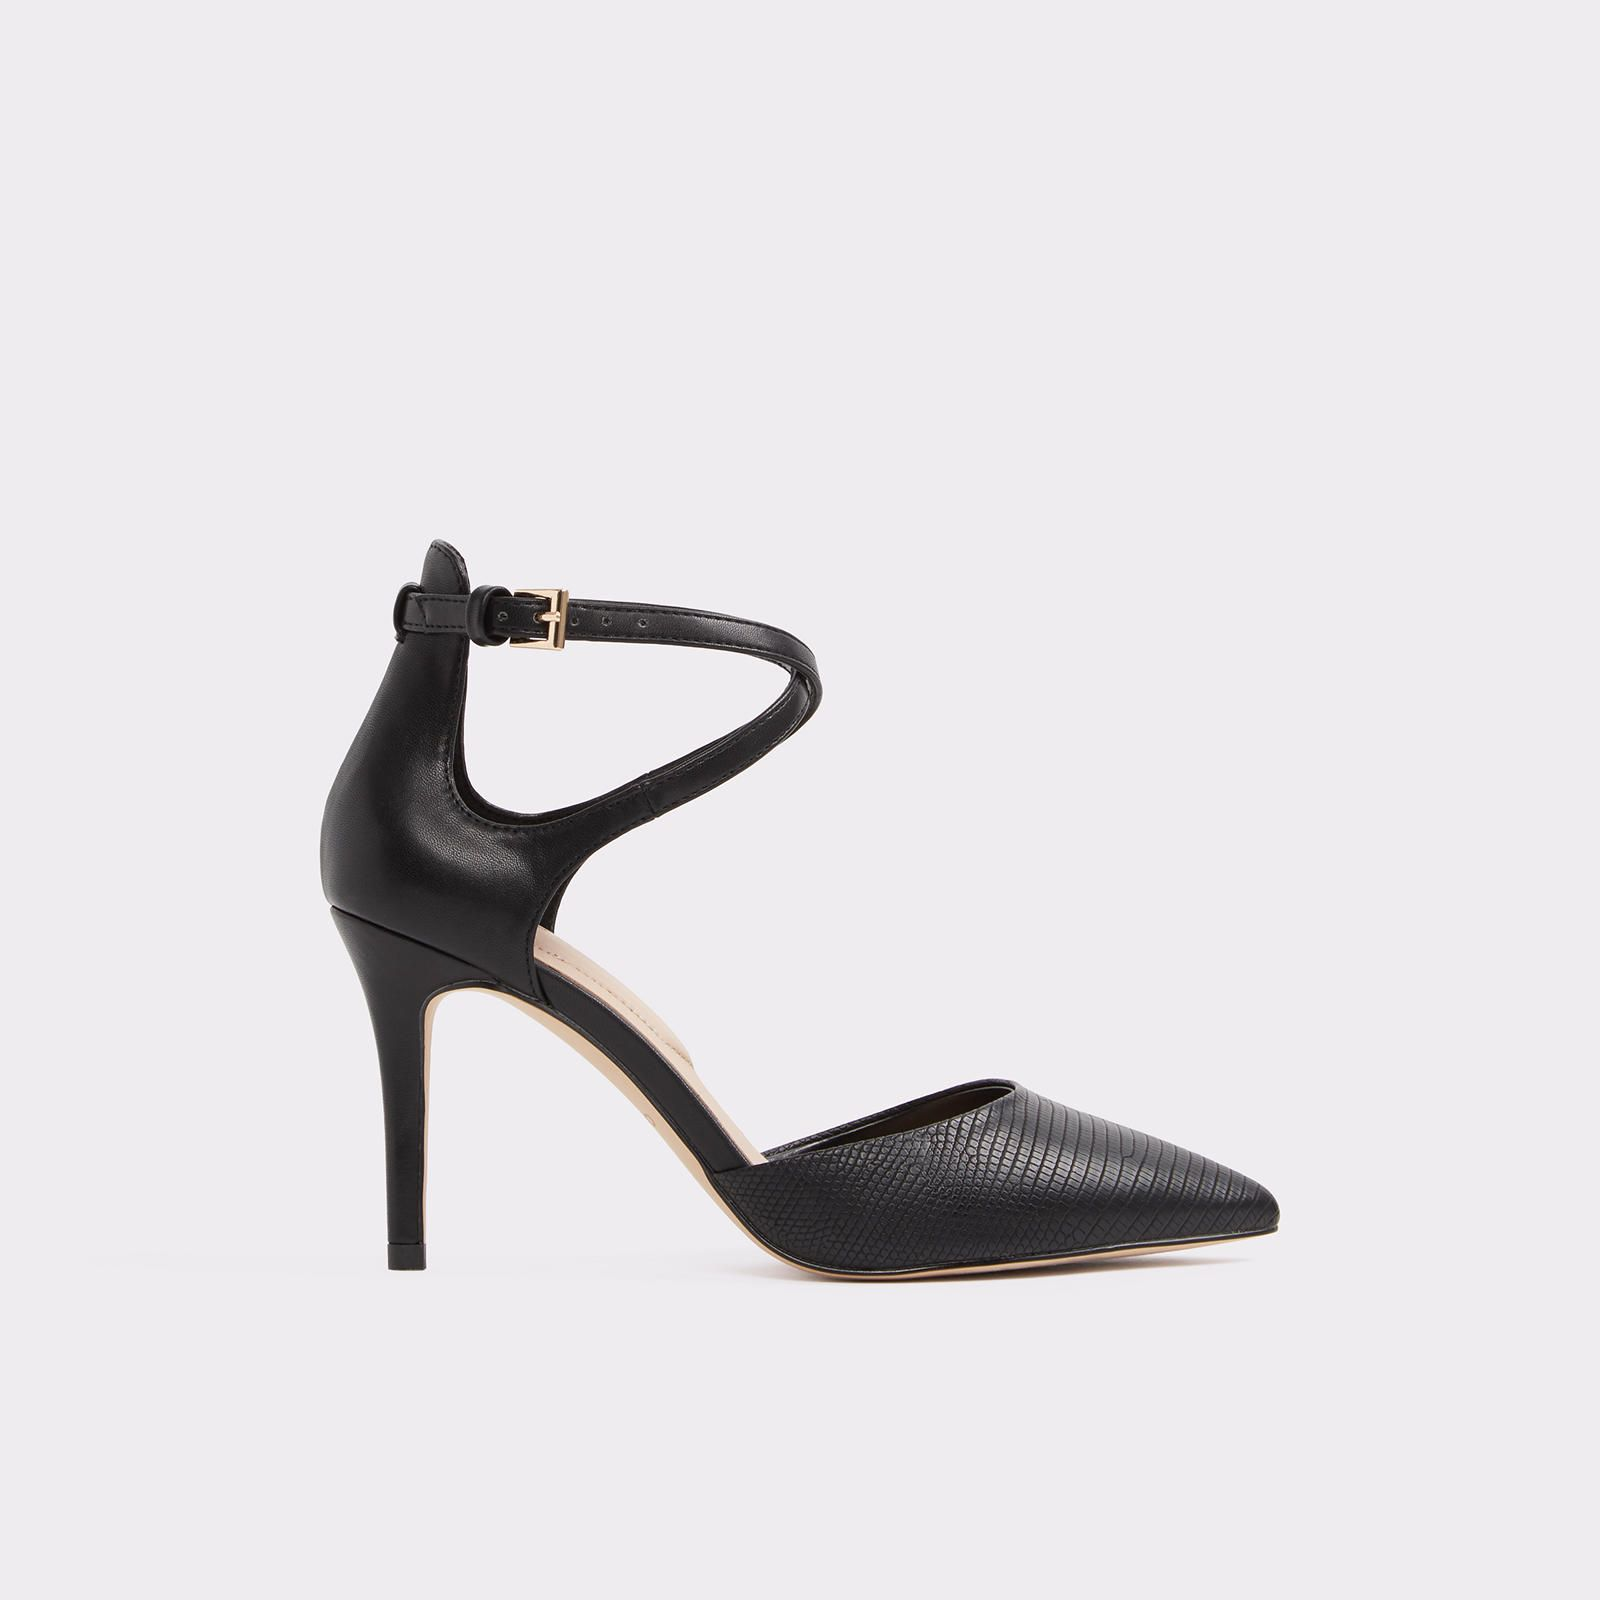 3df5d06afc Thaecia in 2019 | Products | Shoes, Shoes heels, Aldo shoes